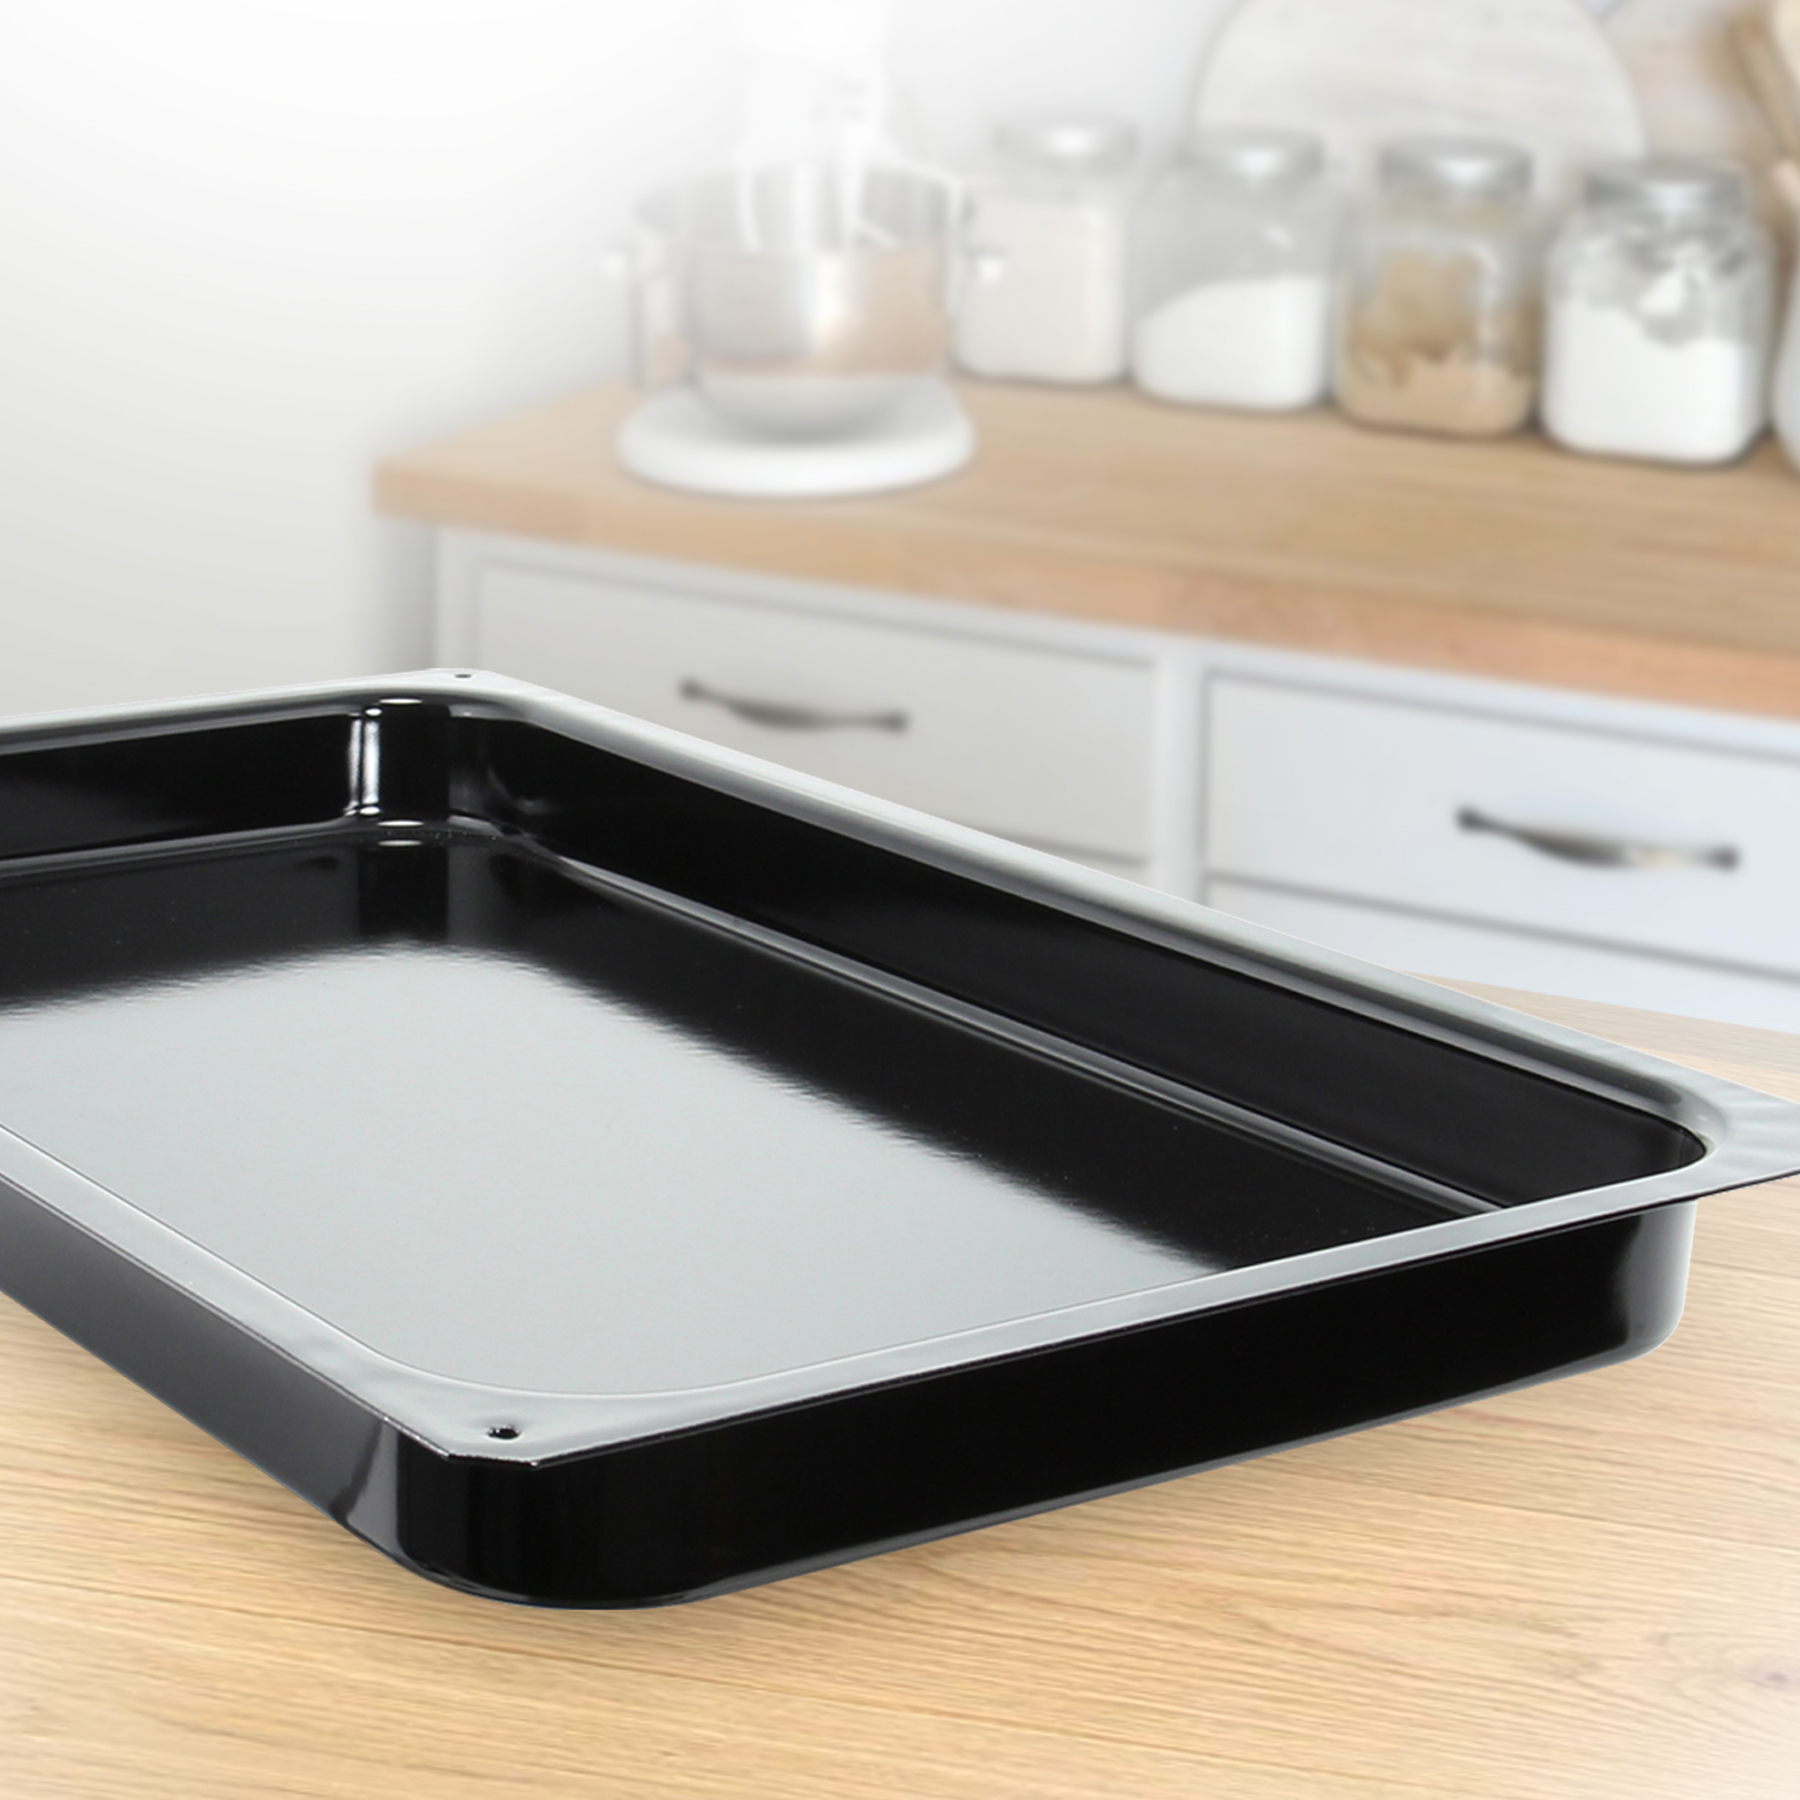 riess 21 inch bake tray in black